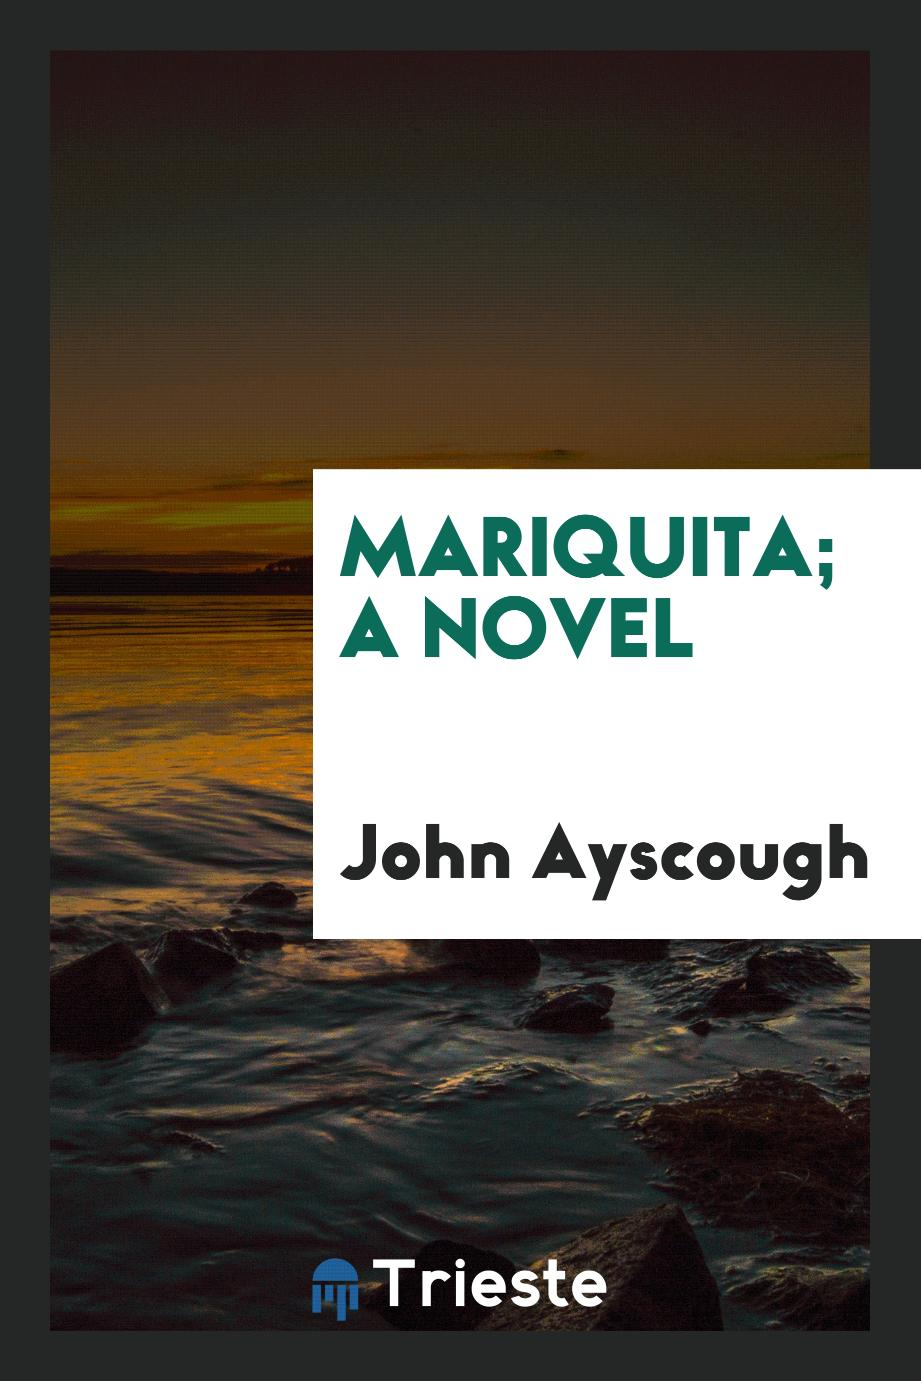 John Ayscough - Mariquita; a novel